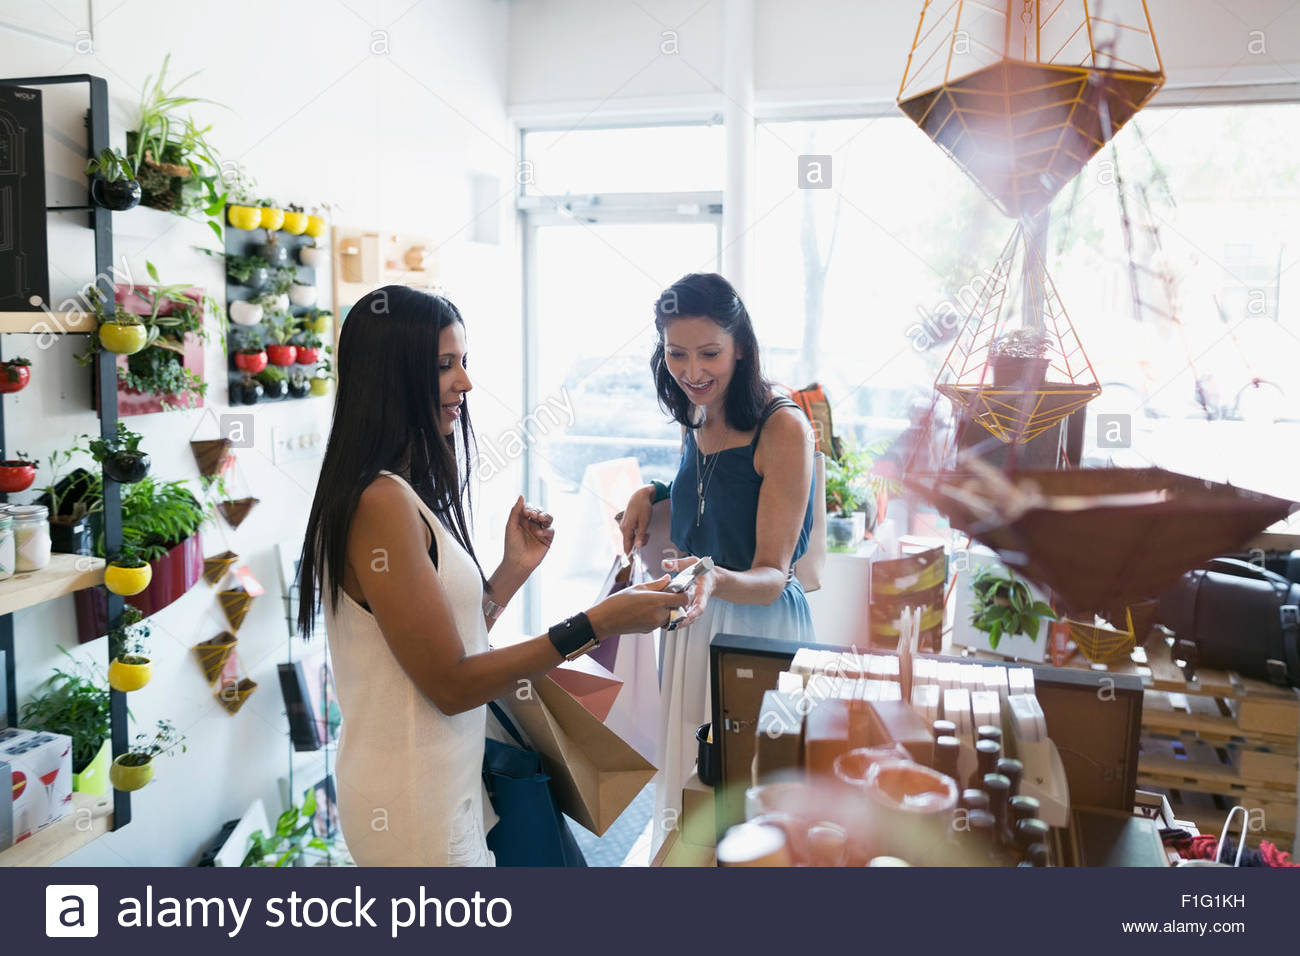 Women shopping in housewares shop Photo Stock